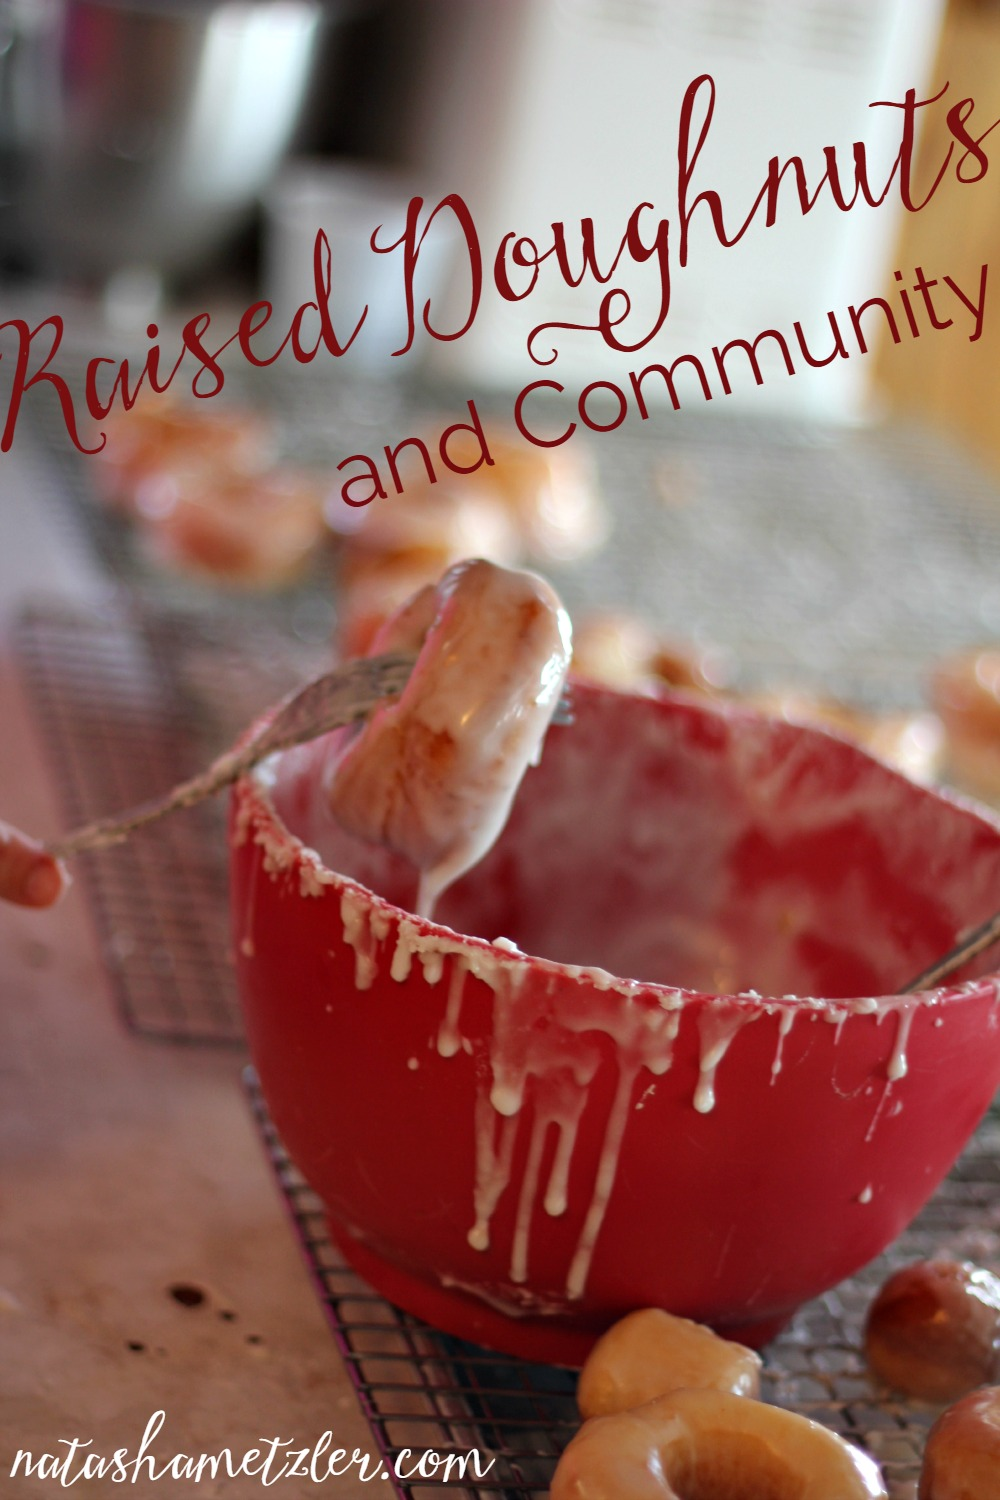 raised doughnuts and community